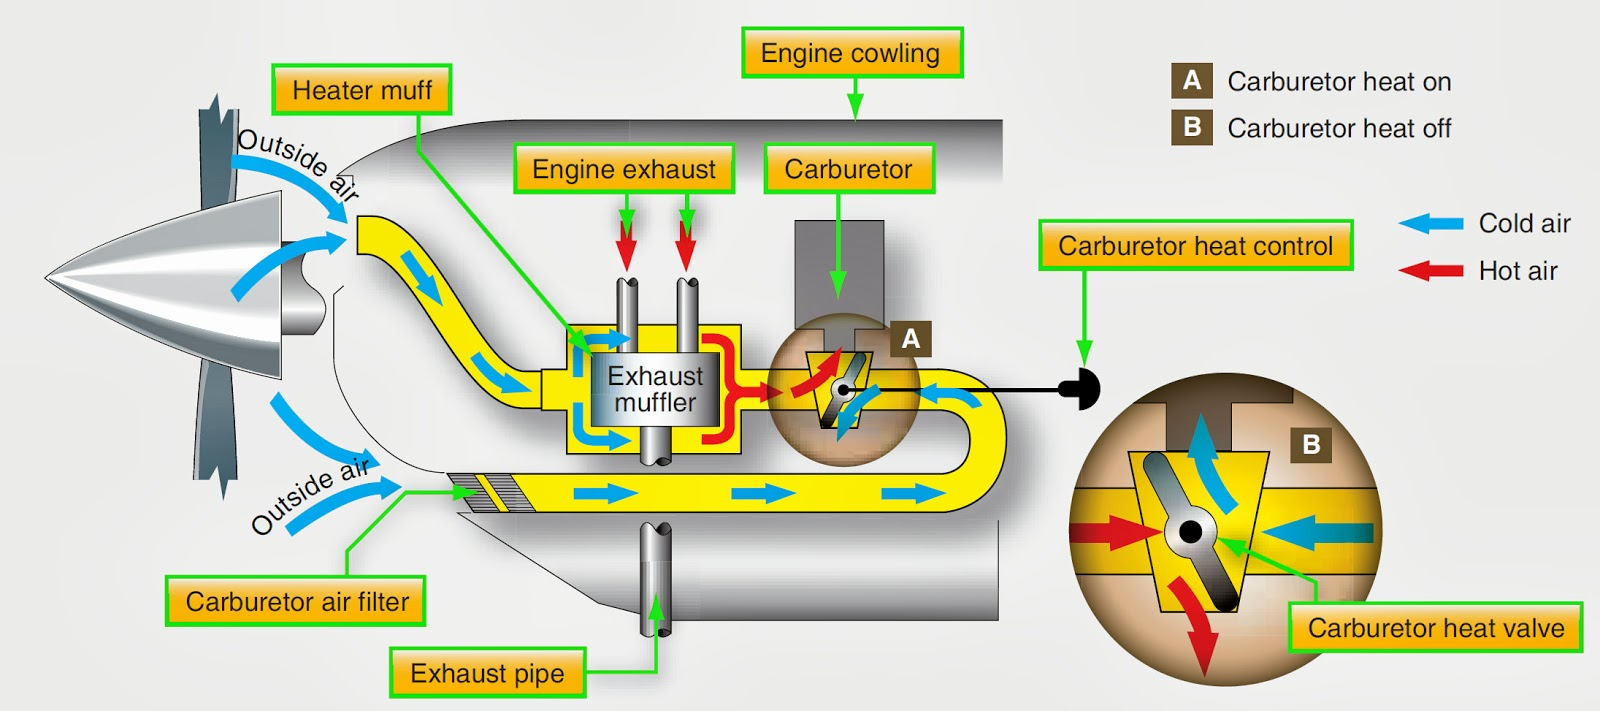 Reciprocating Engine Diagram Simple Guide About Wiring Steam Piston Aircraft Systems Types Of Aviation Fuel